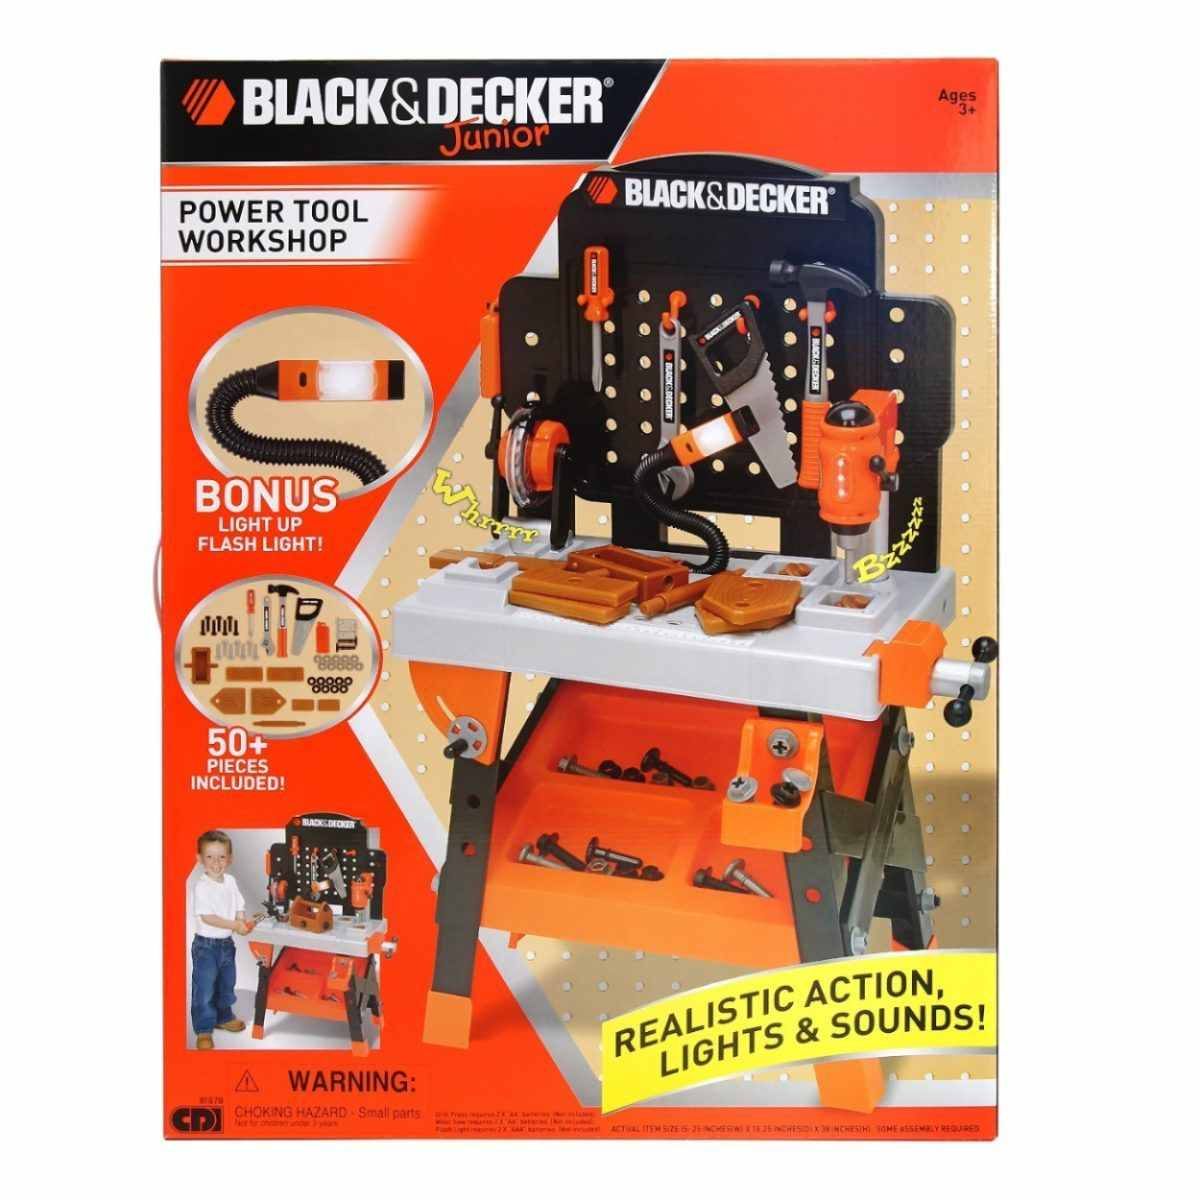 f8bbd9acb Decker Power Tool Junior Workshop 50 Accessories TOOLS SAW LIGHTS SOUNDS.  🔍. Add to Wishlist loading